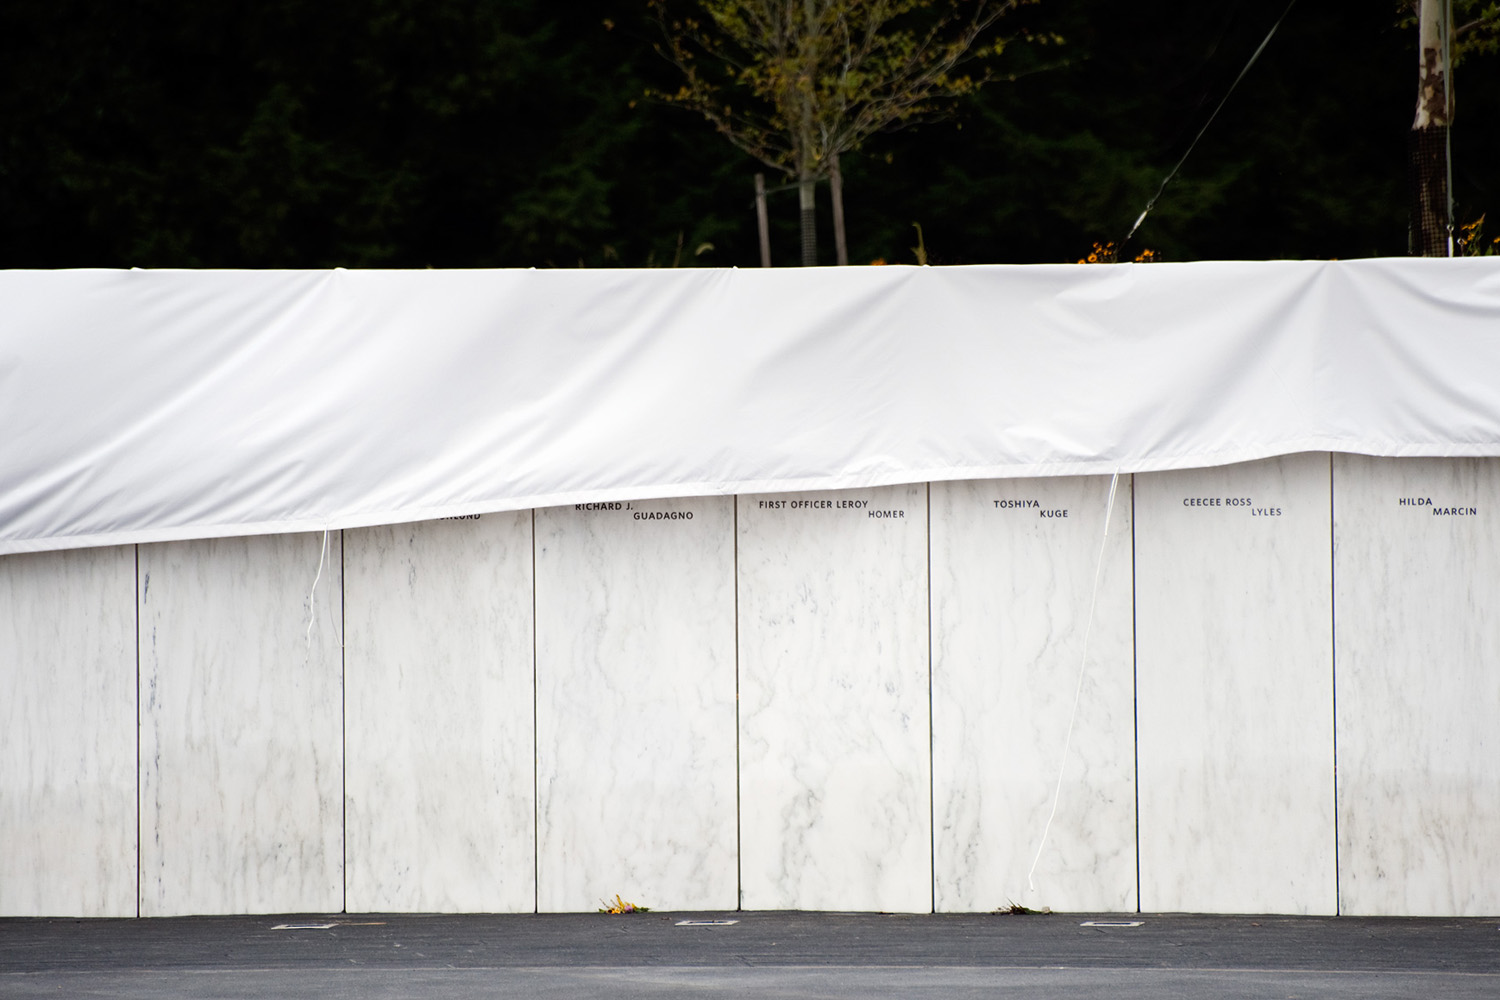 A day before the 10-year-anniversary of 9/11, a wall bearing the names of those who died on United Flight 93 are unveiled near the crash site in Shanksville, Pa., Sept. 10, 2011.